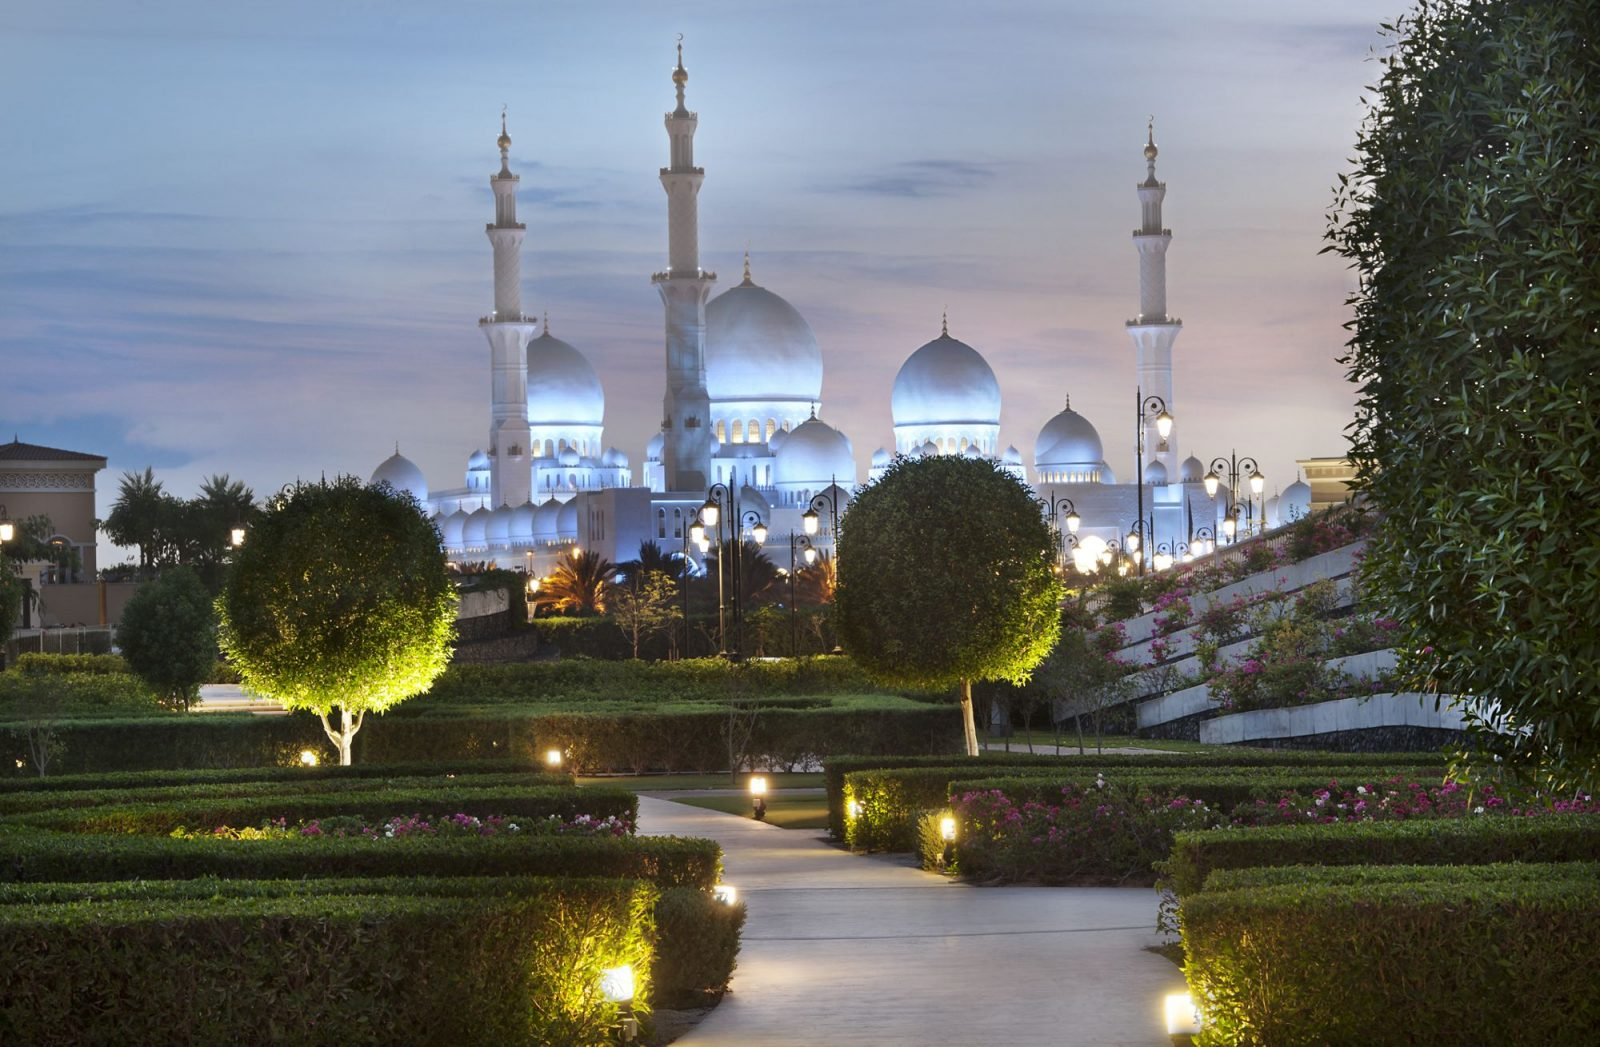 Ritz Carlton Abu Dhabi view on the Grand Mosque